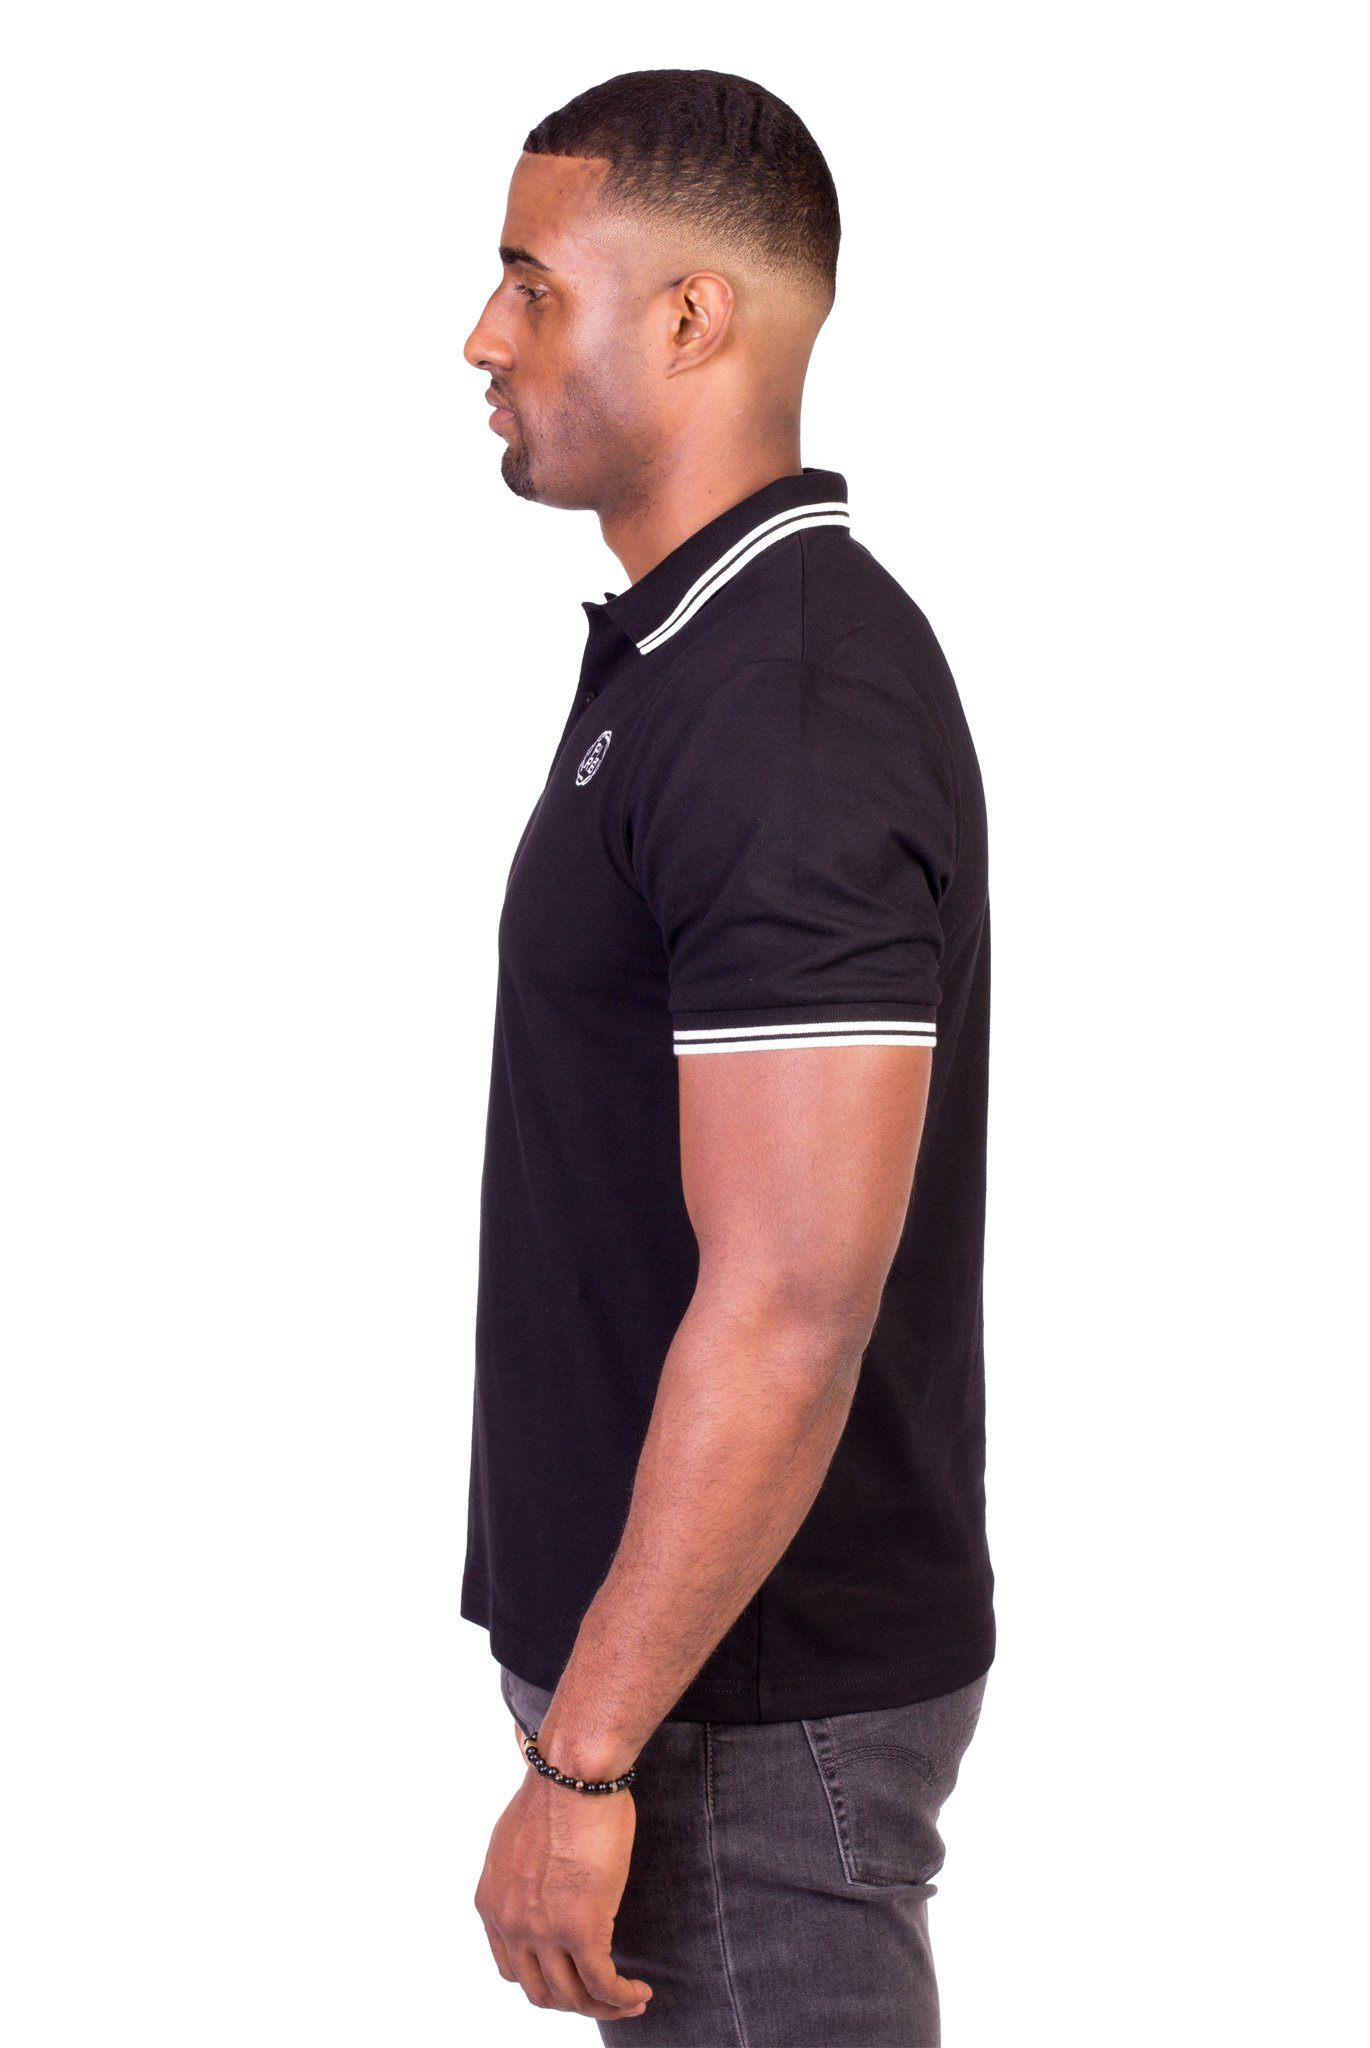 BELVEDERE POLO SHIRT IN BLACK | Poor Little Rich Boy Clothing